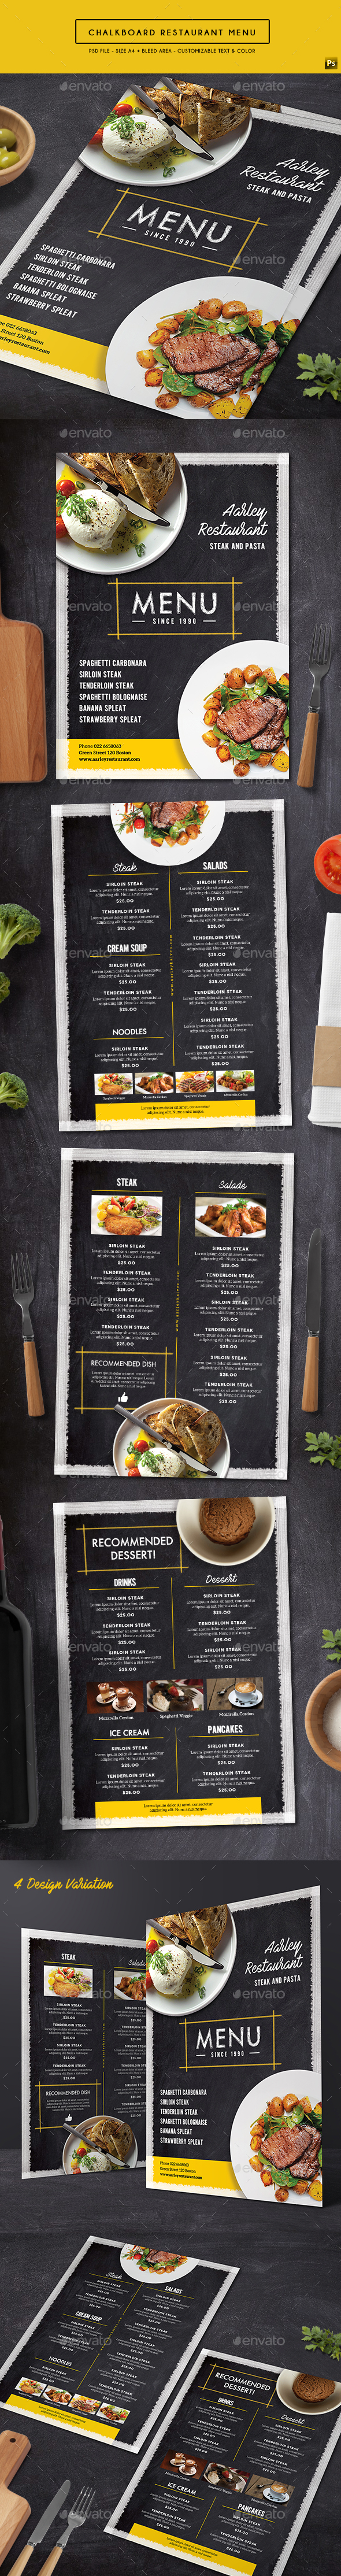 Chalkboard Restaurant Menu - Food Menus Print Templates